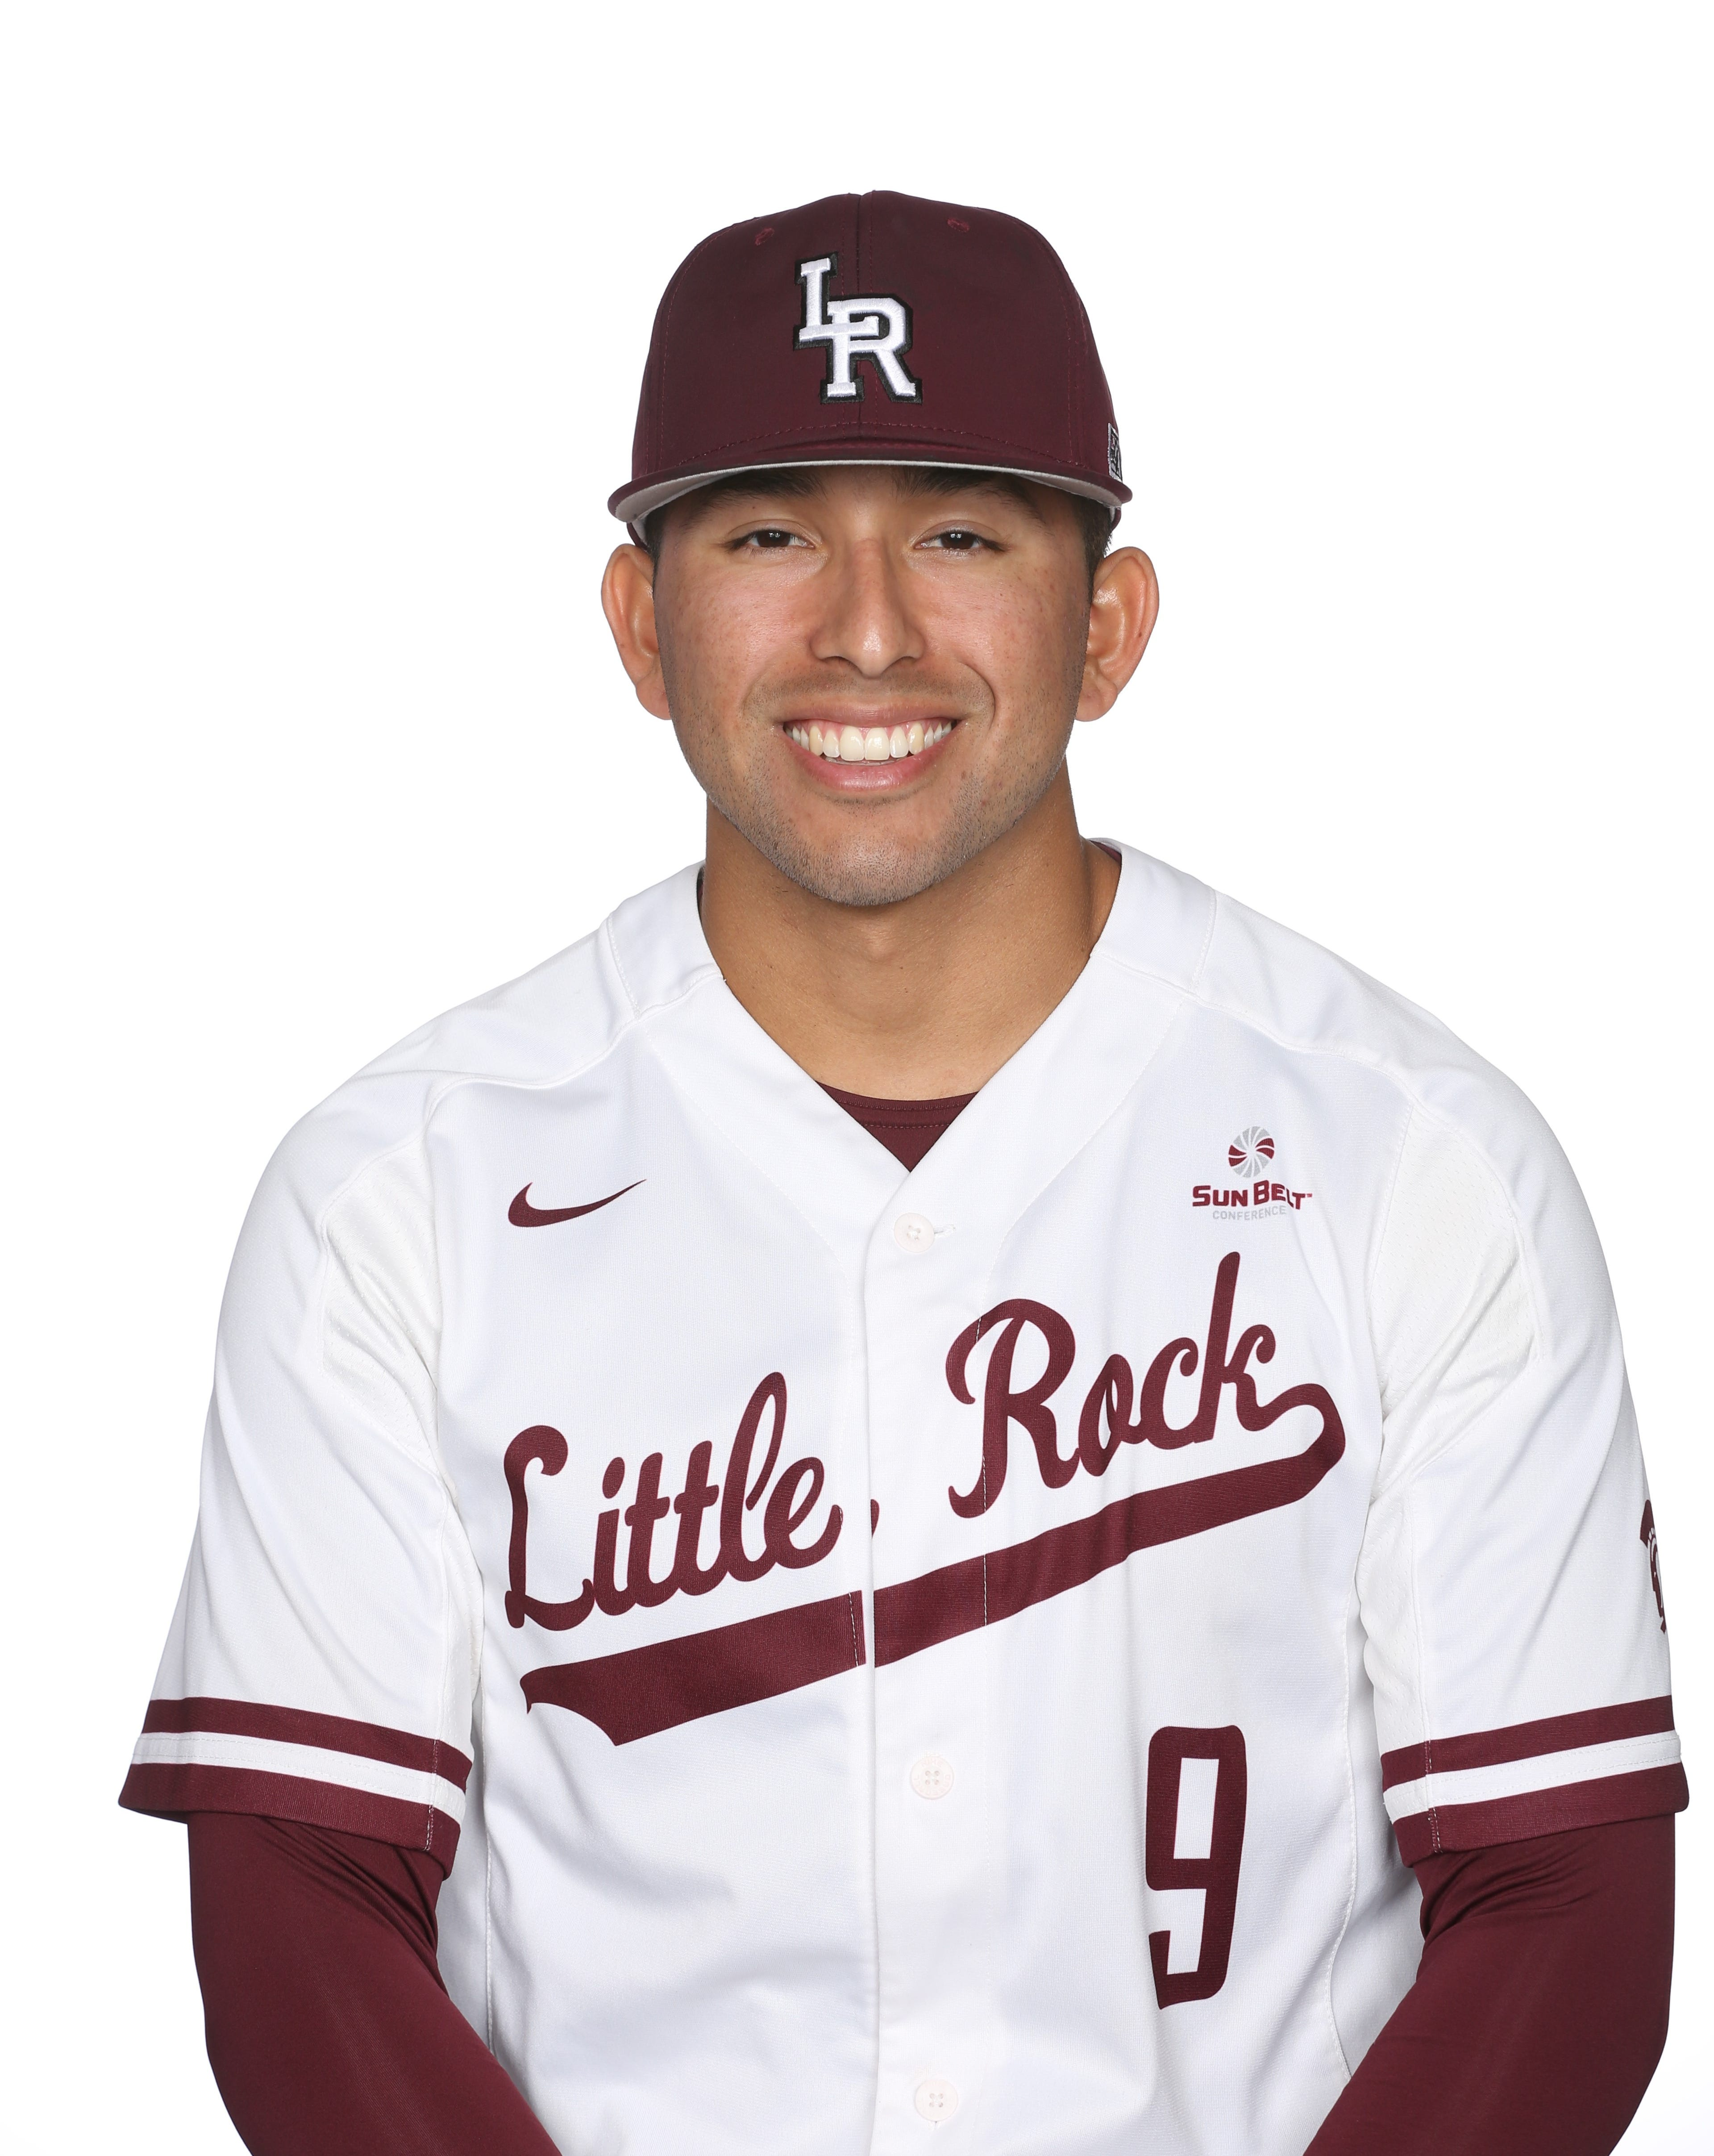 Ryan Benavidez started 38 games in the outfield and hit .293 with 36 hits and a team-best .512 slugging percentage.